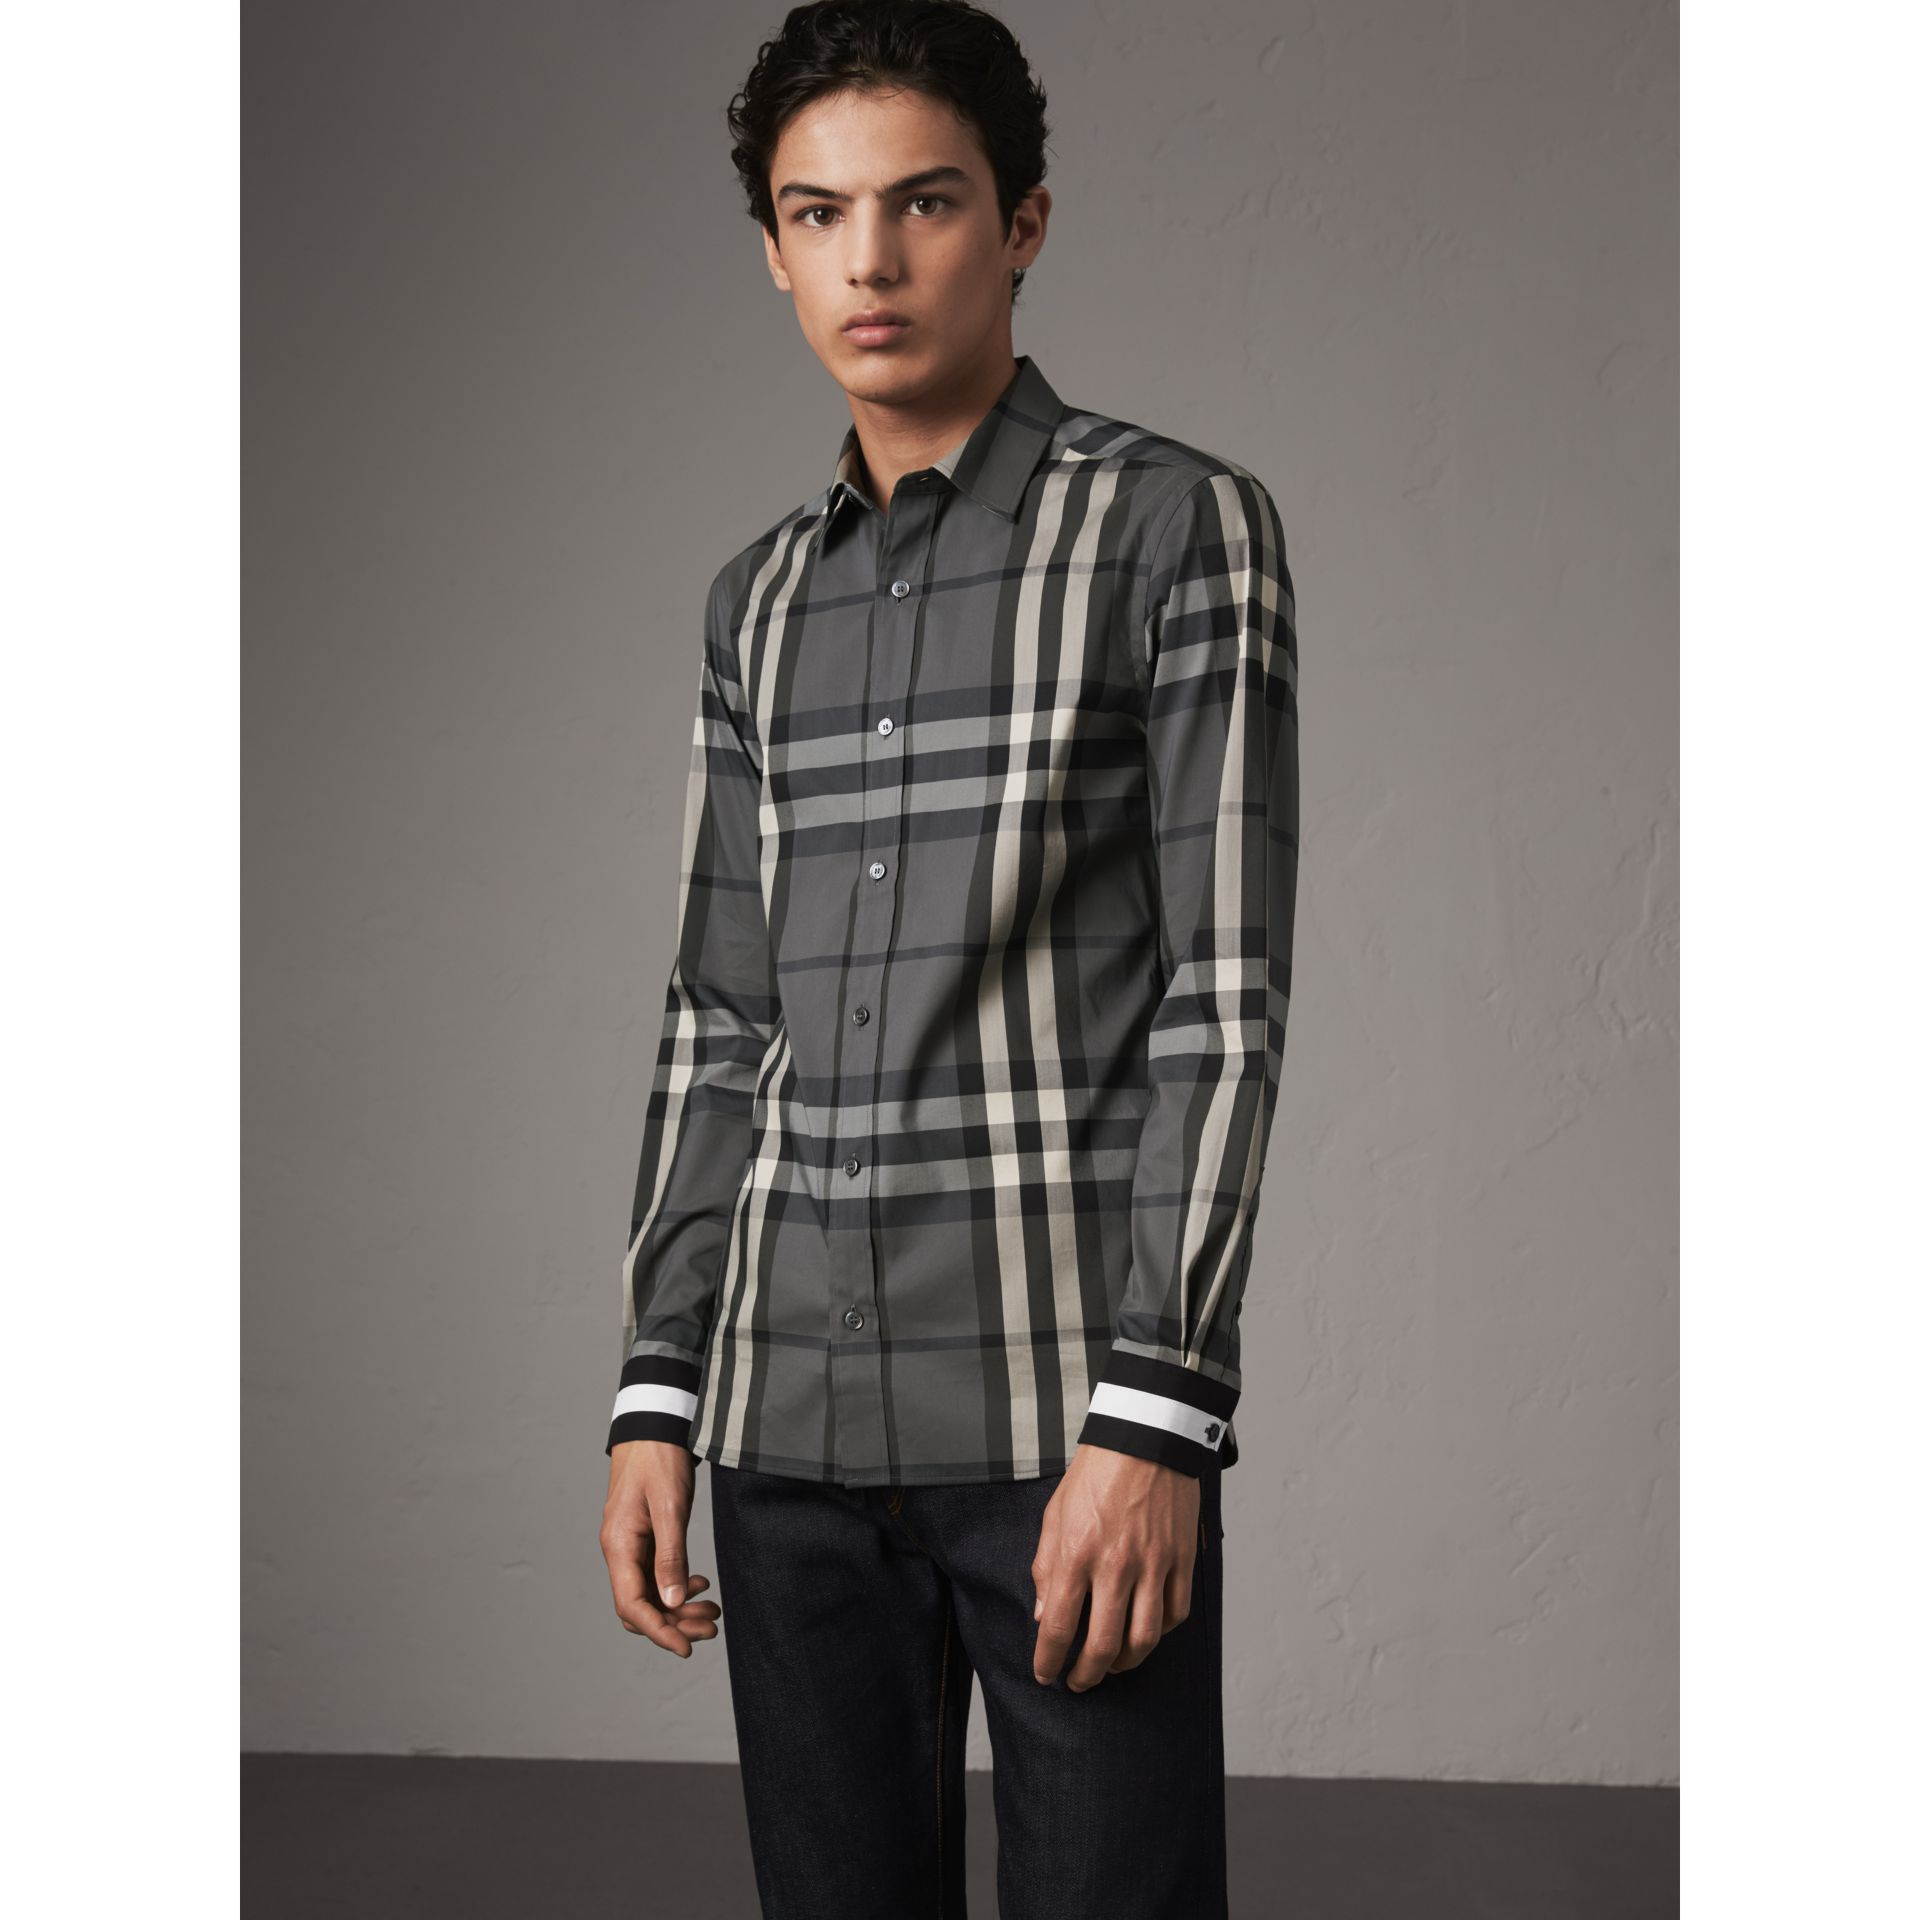 Striped Cuff Check Cotton Blend Shirt in Charcoal - Men | Burberry - gallery image 0